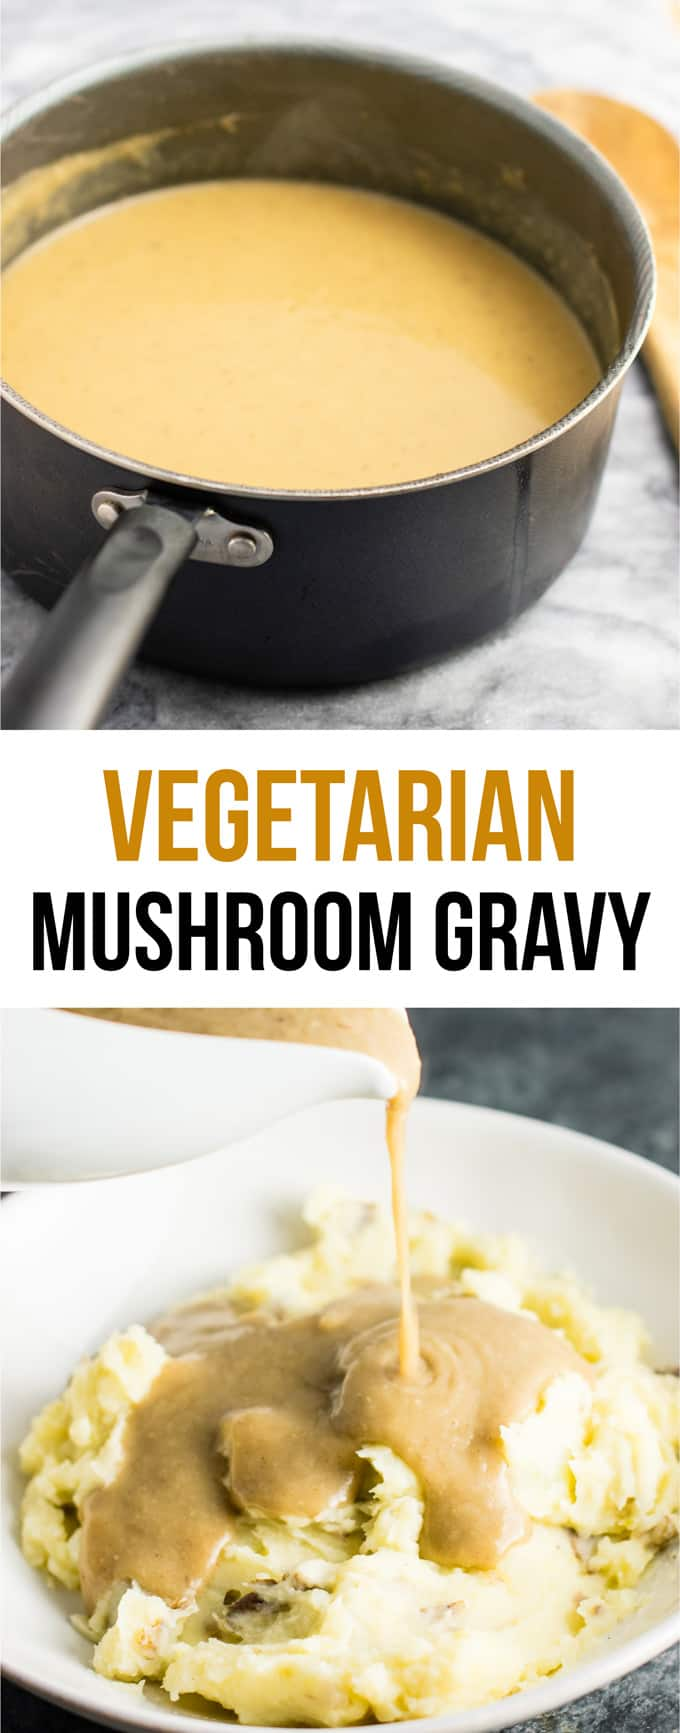 Vegetarian gravy recipe – this is the BEST gravy I have ever had, with or without meat! Seriously incredible and everyone will be wanting some at Thanksgiving! #gravy #vegetarian #mushroomgravy #vegan #vegetarianthanksgiving